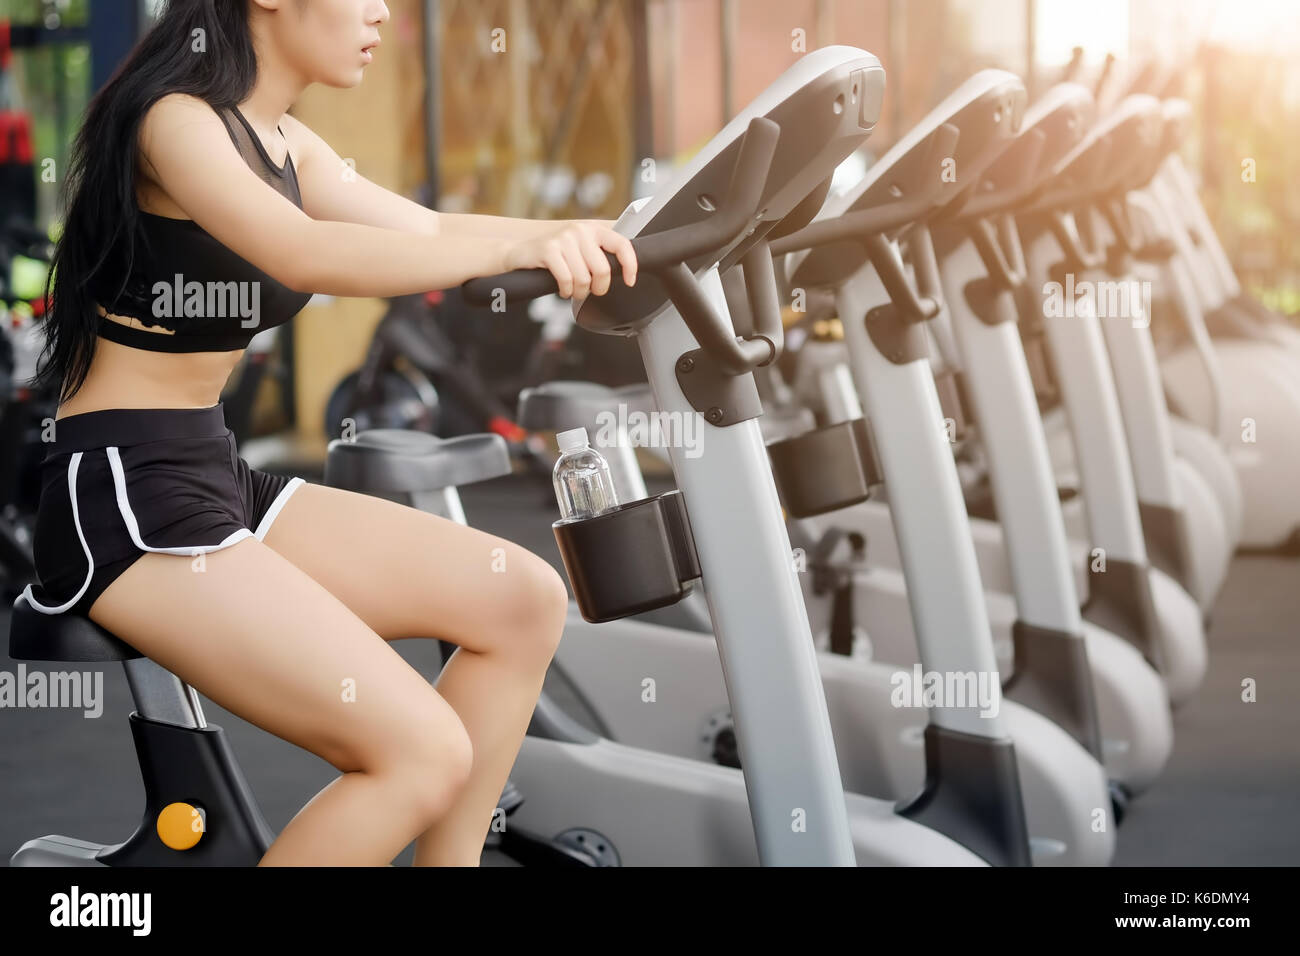 Sportive Woman during cycling workout in sport gym bike doing cardio exercise. - Stock Image